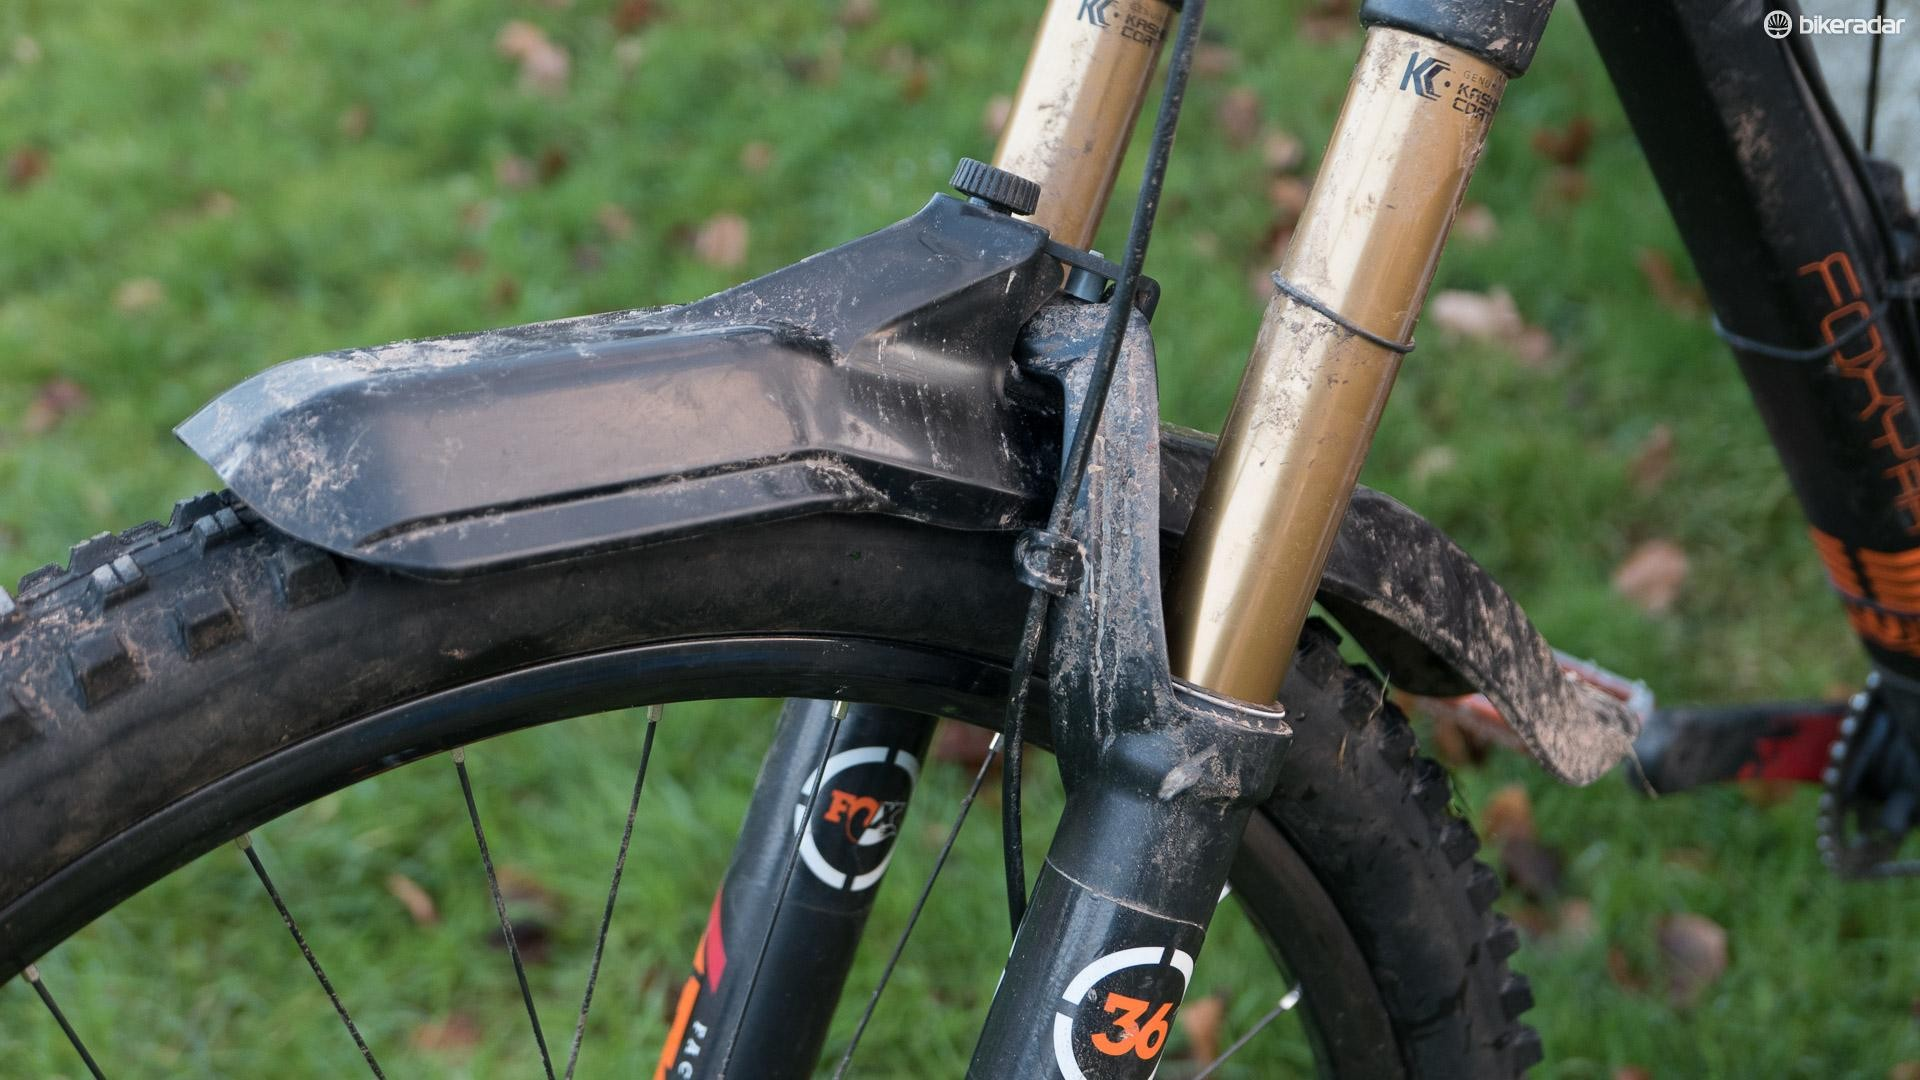 The Powa DFender is pricey and has limited fitting options but it works superbly